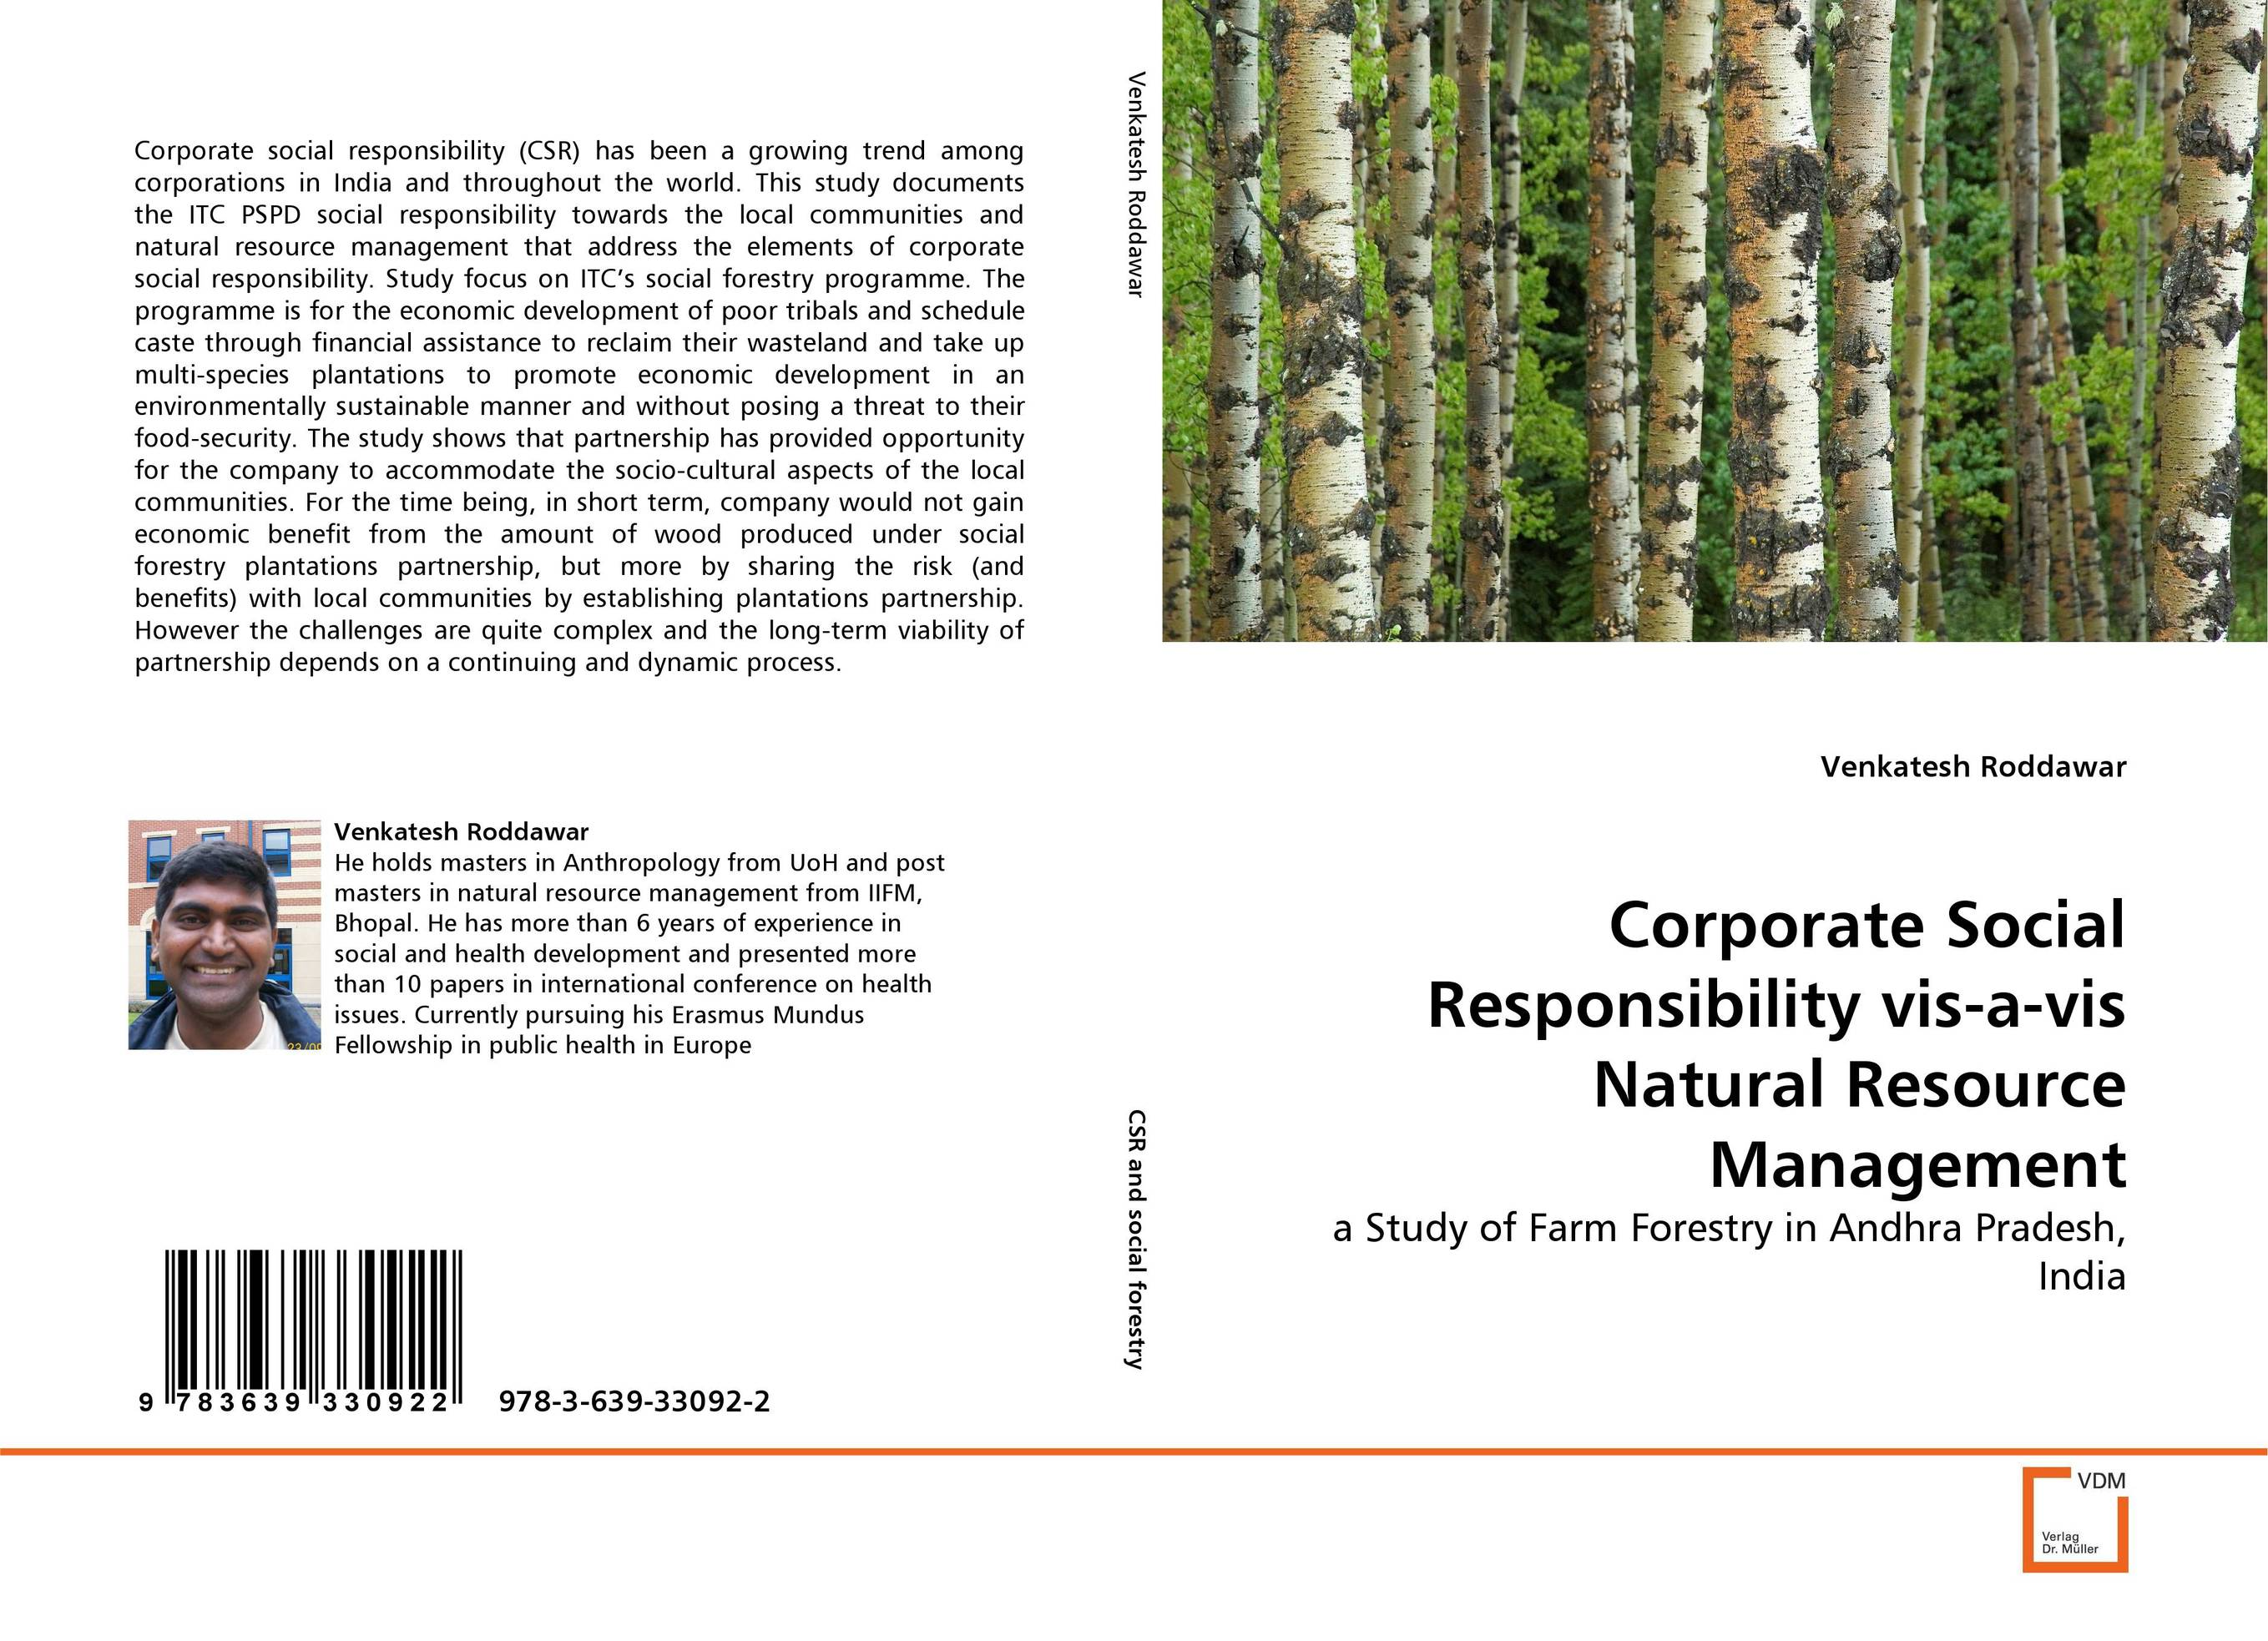 Corporate Social Responsibility vis-a-vis Natural Resource Management srichander ramaswamy managing credit risk in corporate bond portfolios a practitioner s guide